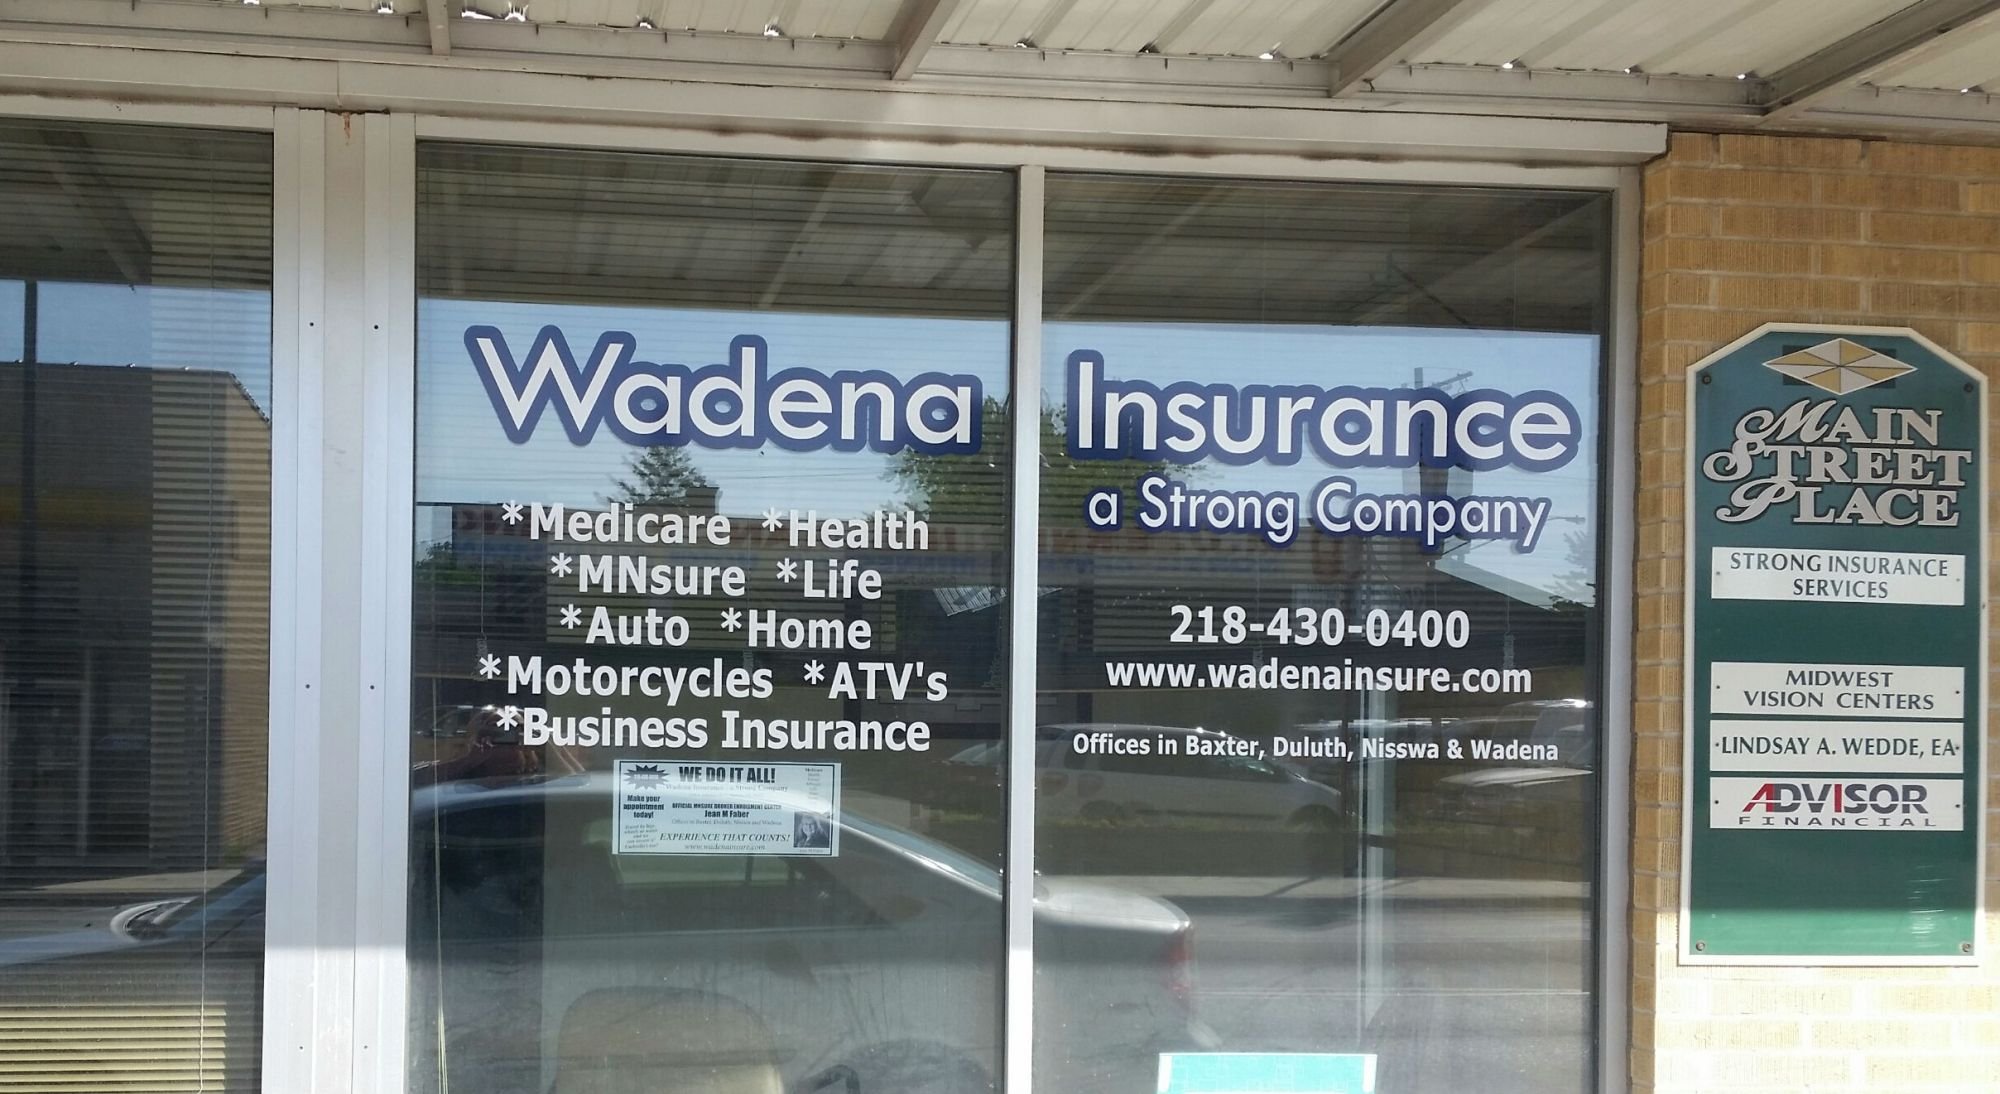 Strong Insurance of Wadena